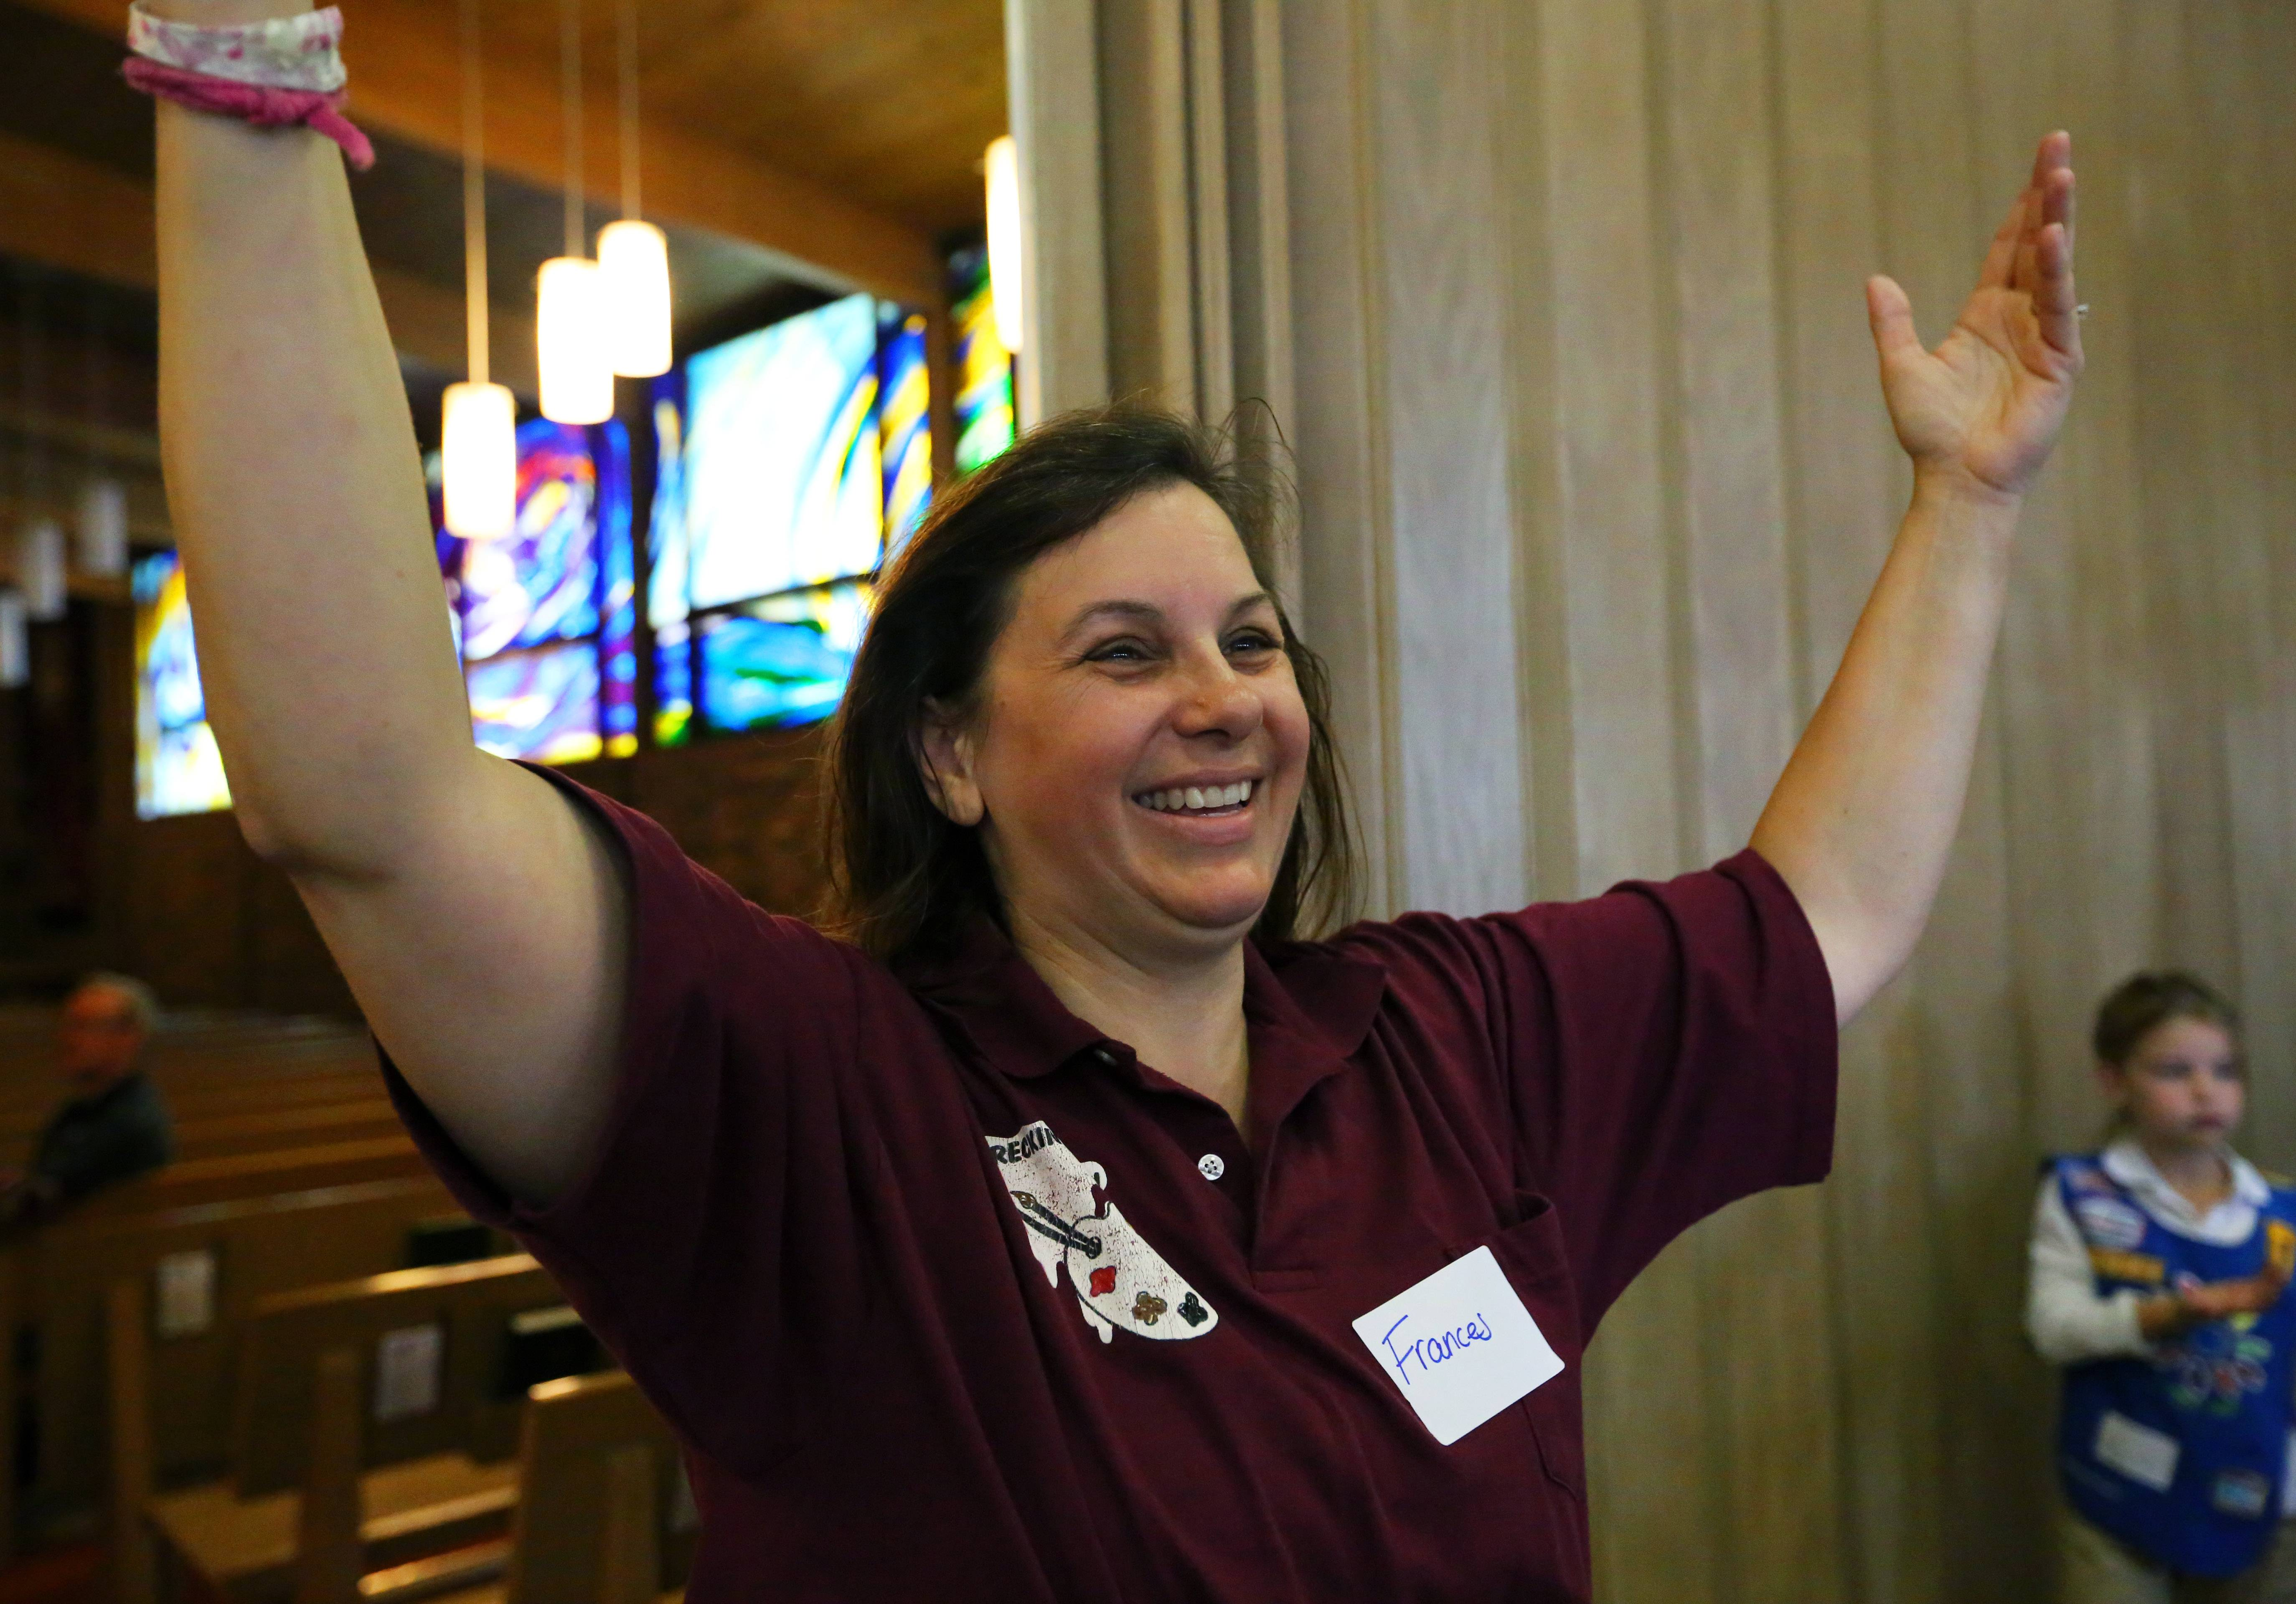 A jubilant Frances Lehning calls for a break Saturday at Lutheran Church of the Holy Spirit in Elk Grove Village. As part of Operation Cookie Drop, the local Scouts will ship 13,000 boxes of Girl Scout cookies to veteran organizations in all 50 states.